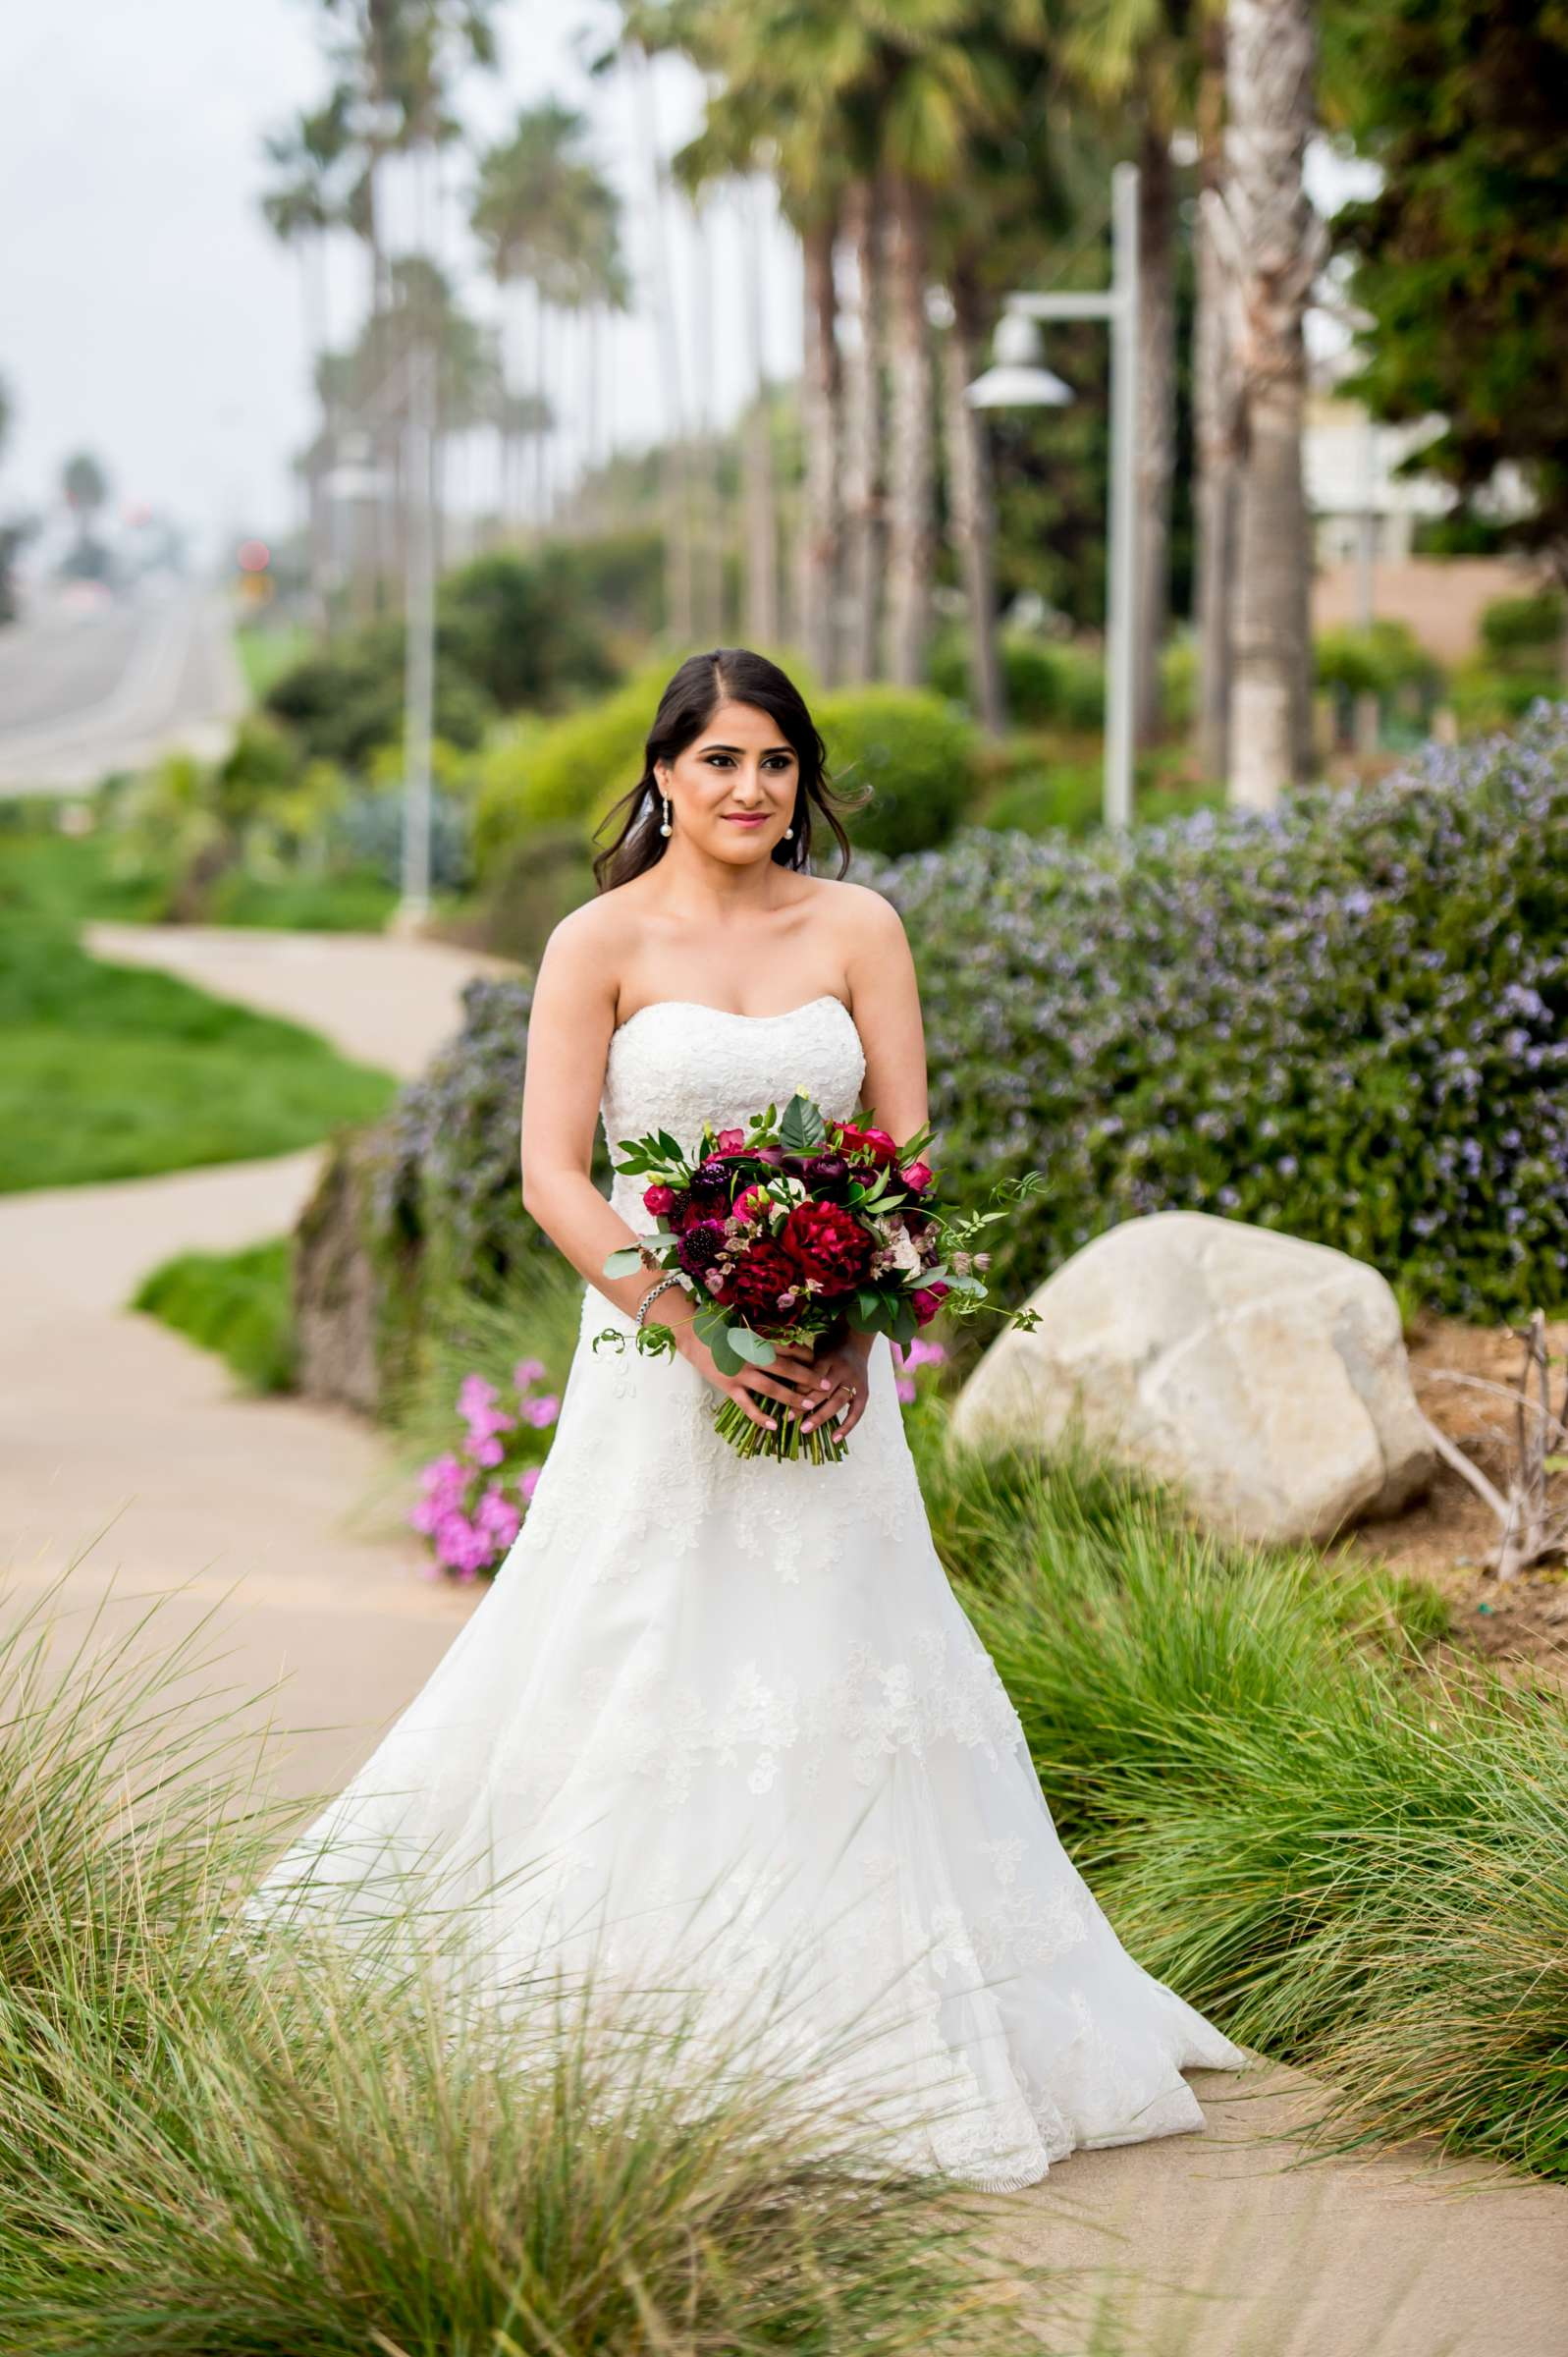 Cape Rey Carlsbad, A Hilton Resort Wedding, Jasmine and Kyle Wedding Photo #62 by True Photography